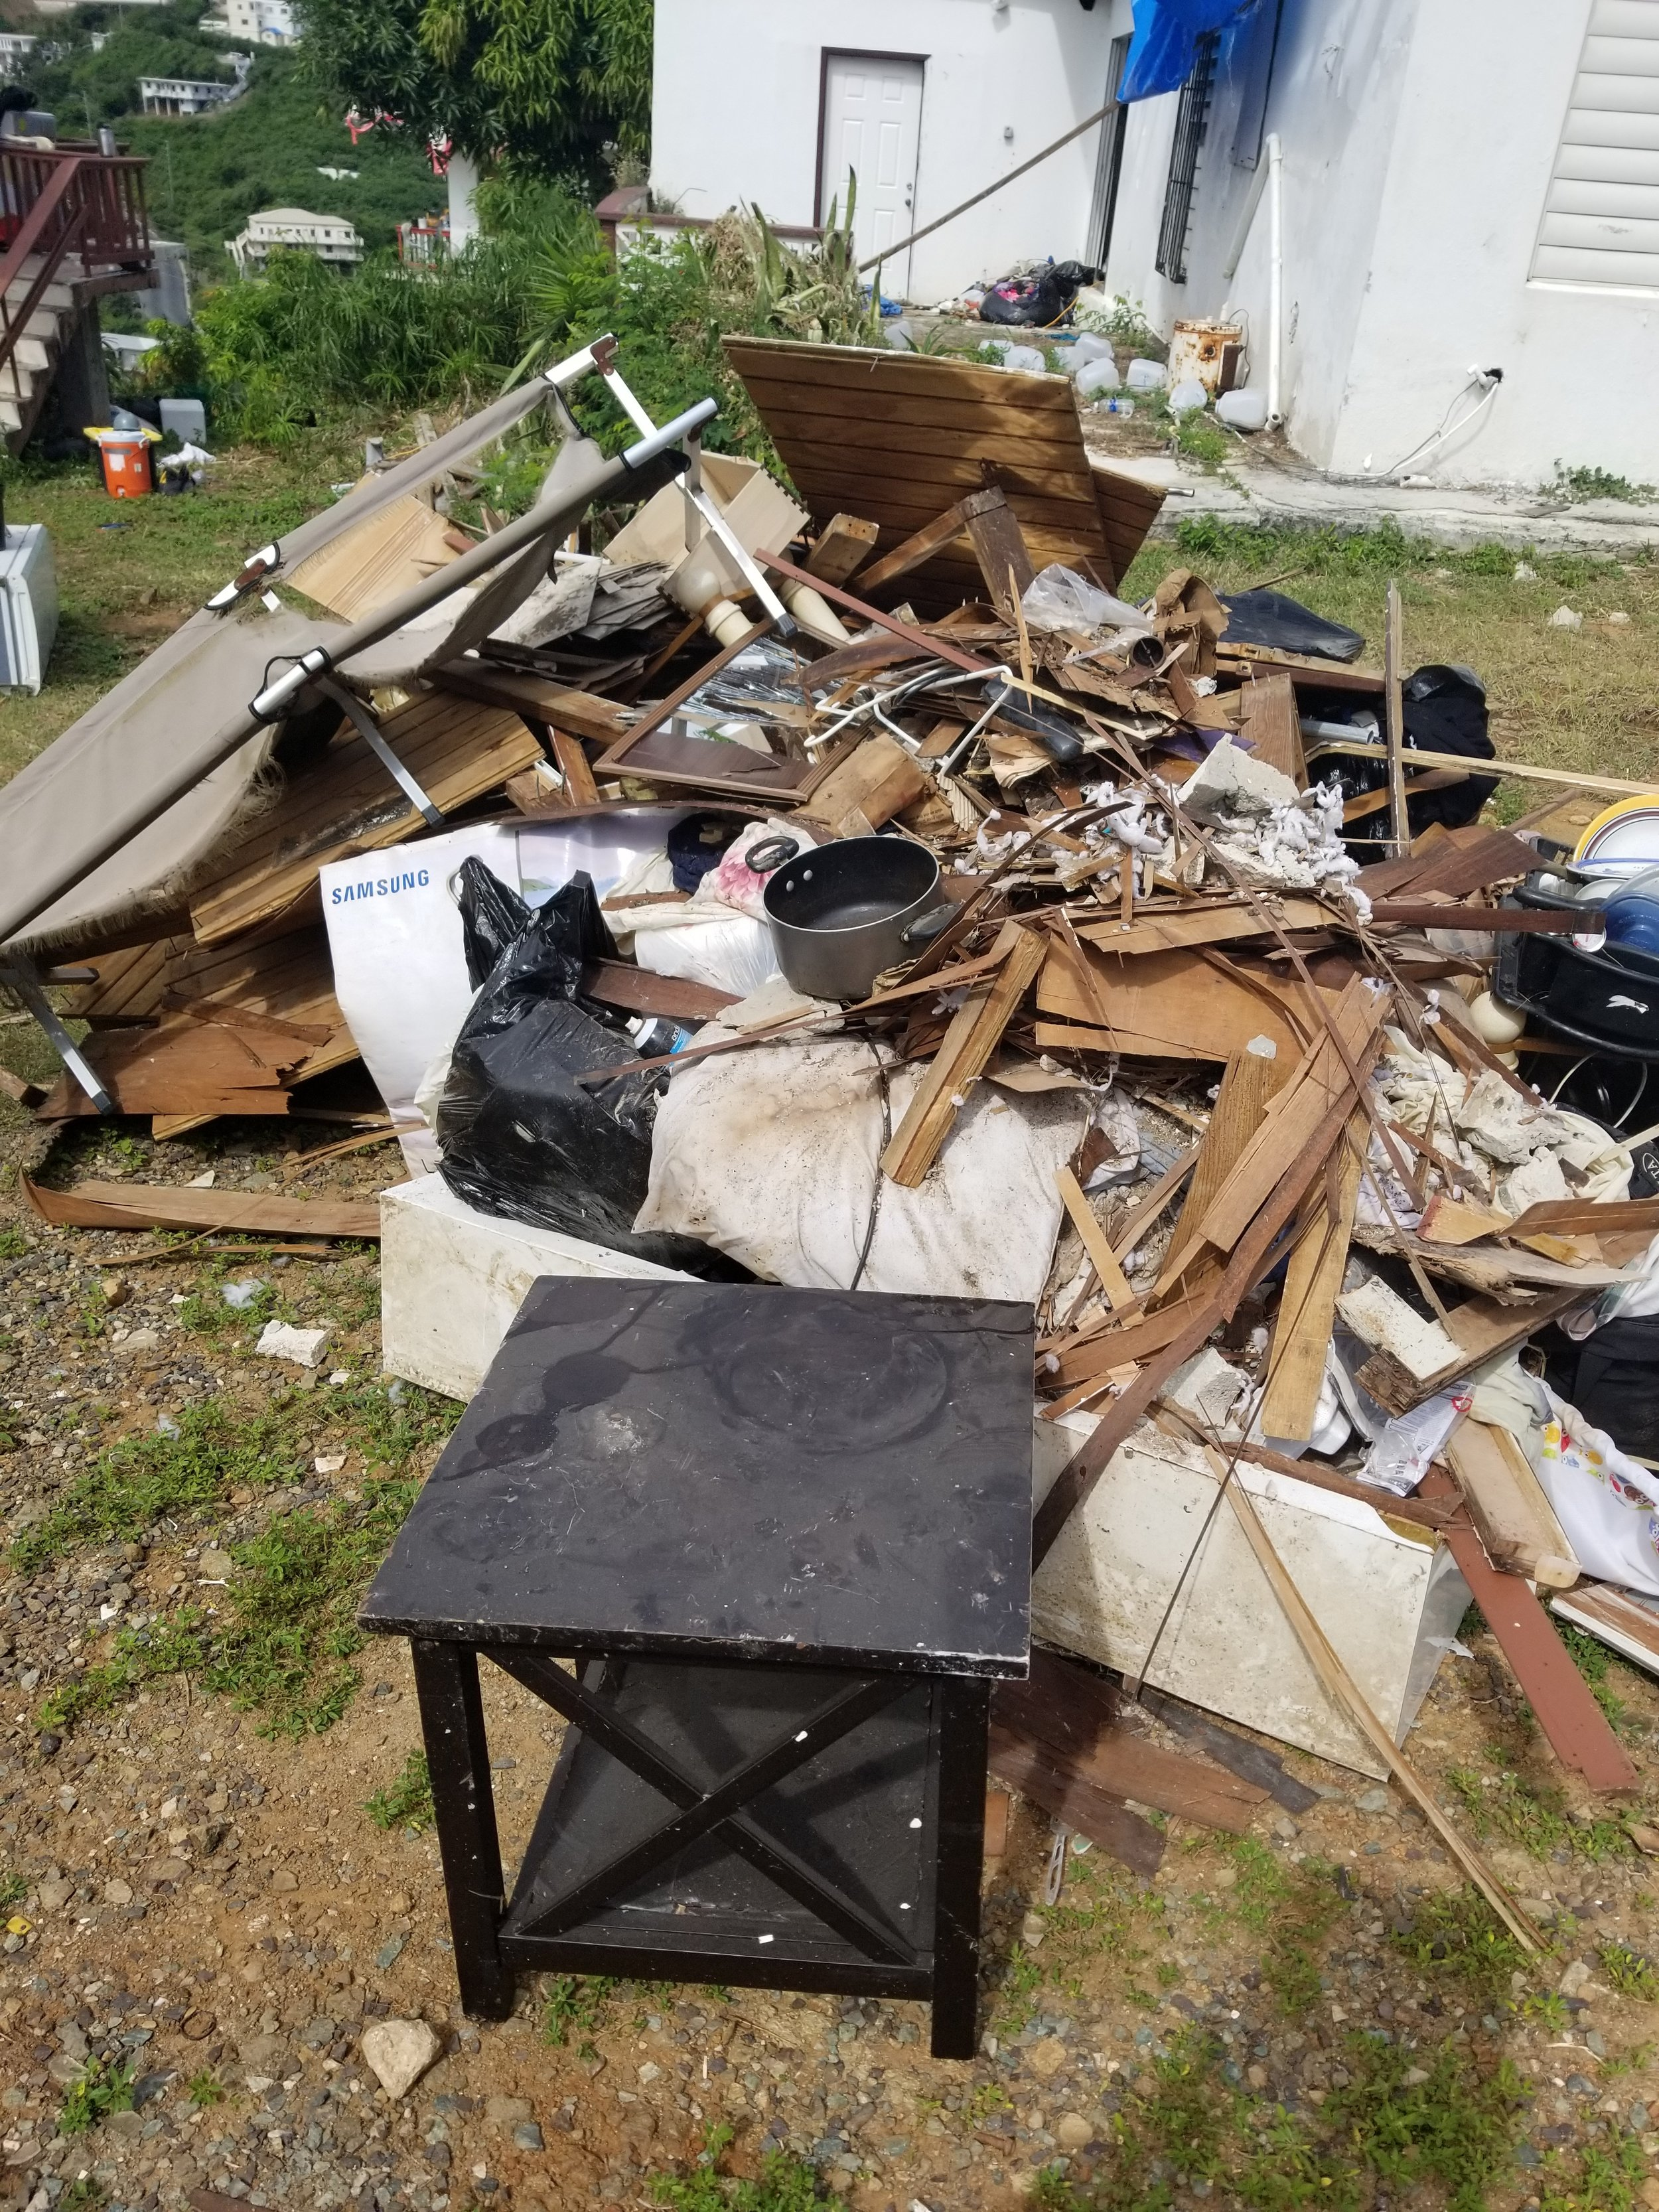 There were very items we could salvage from the home.